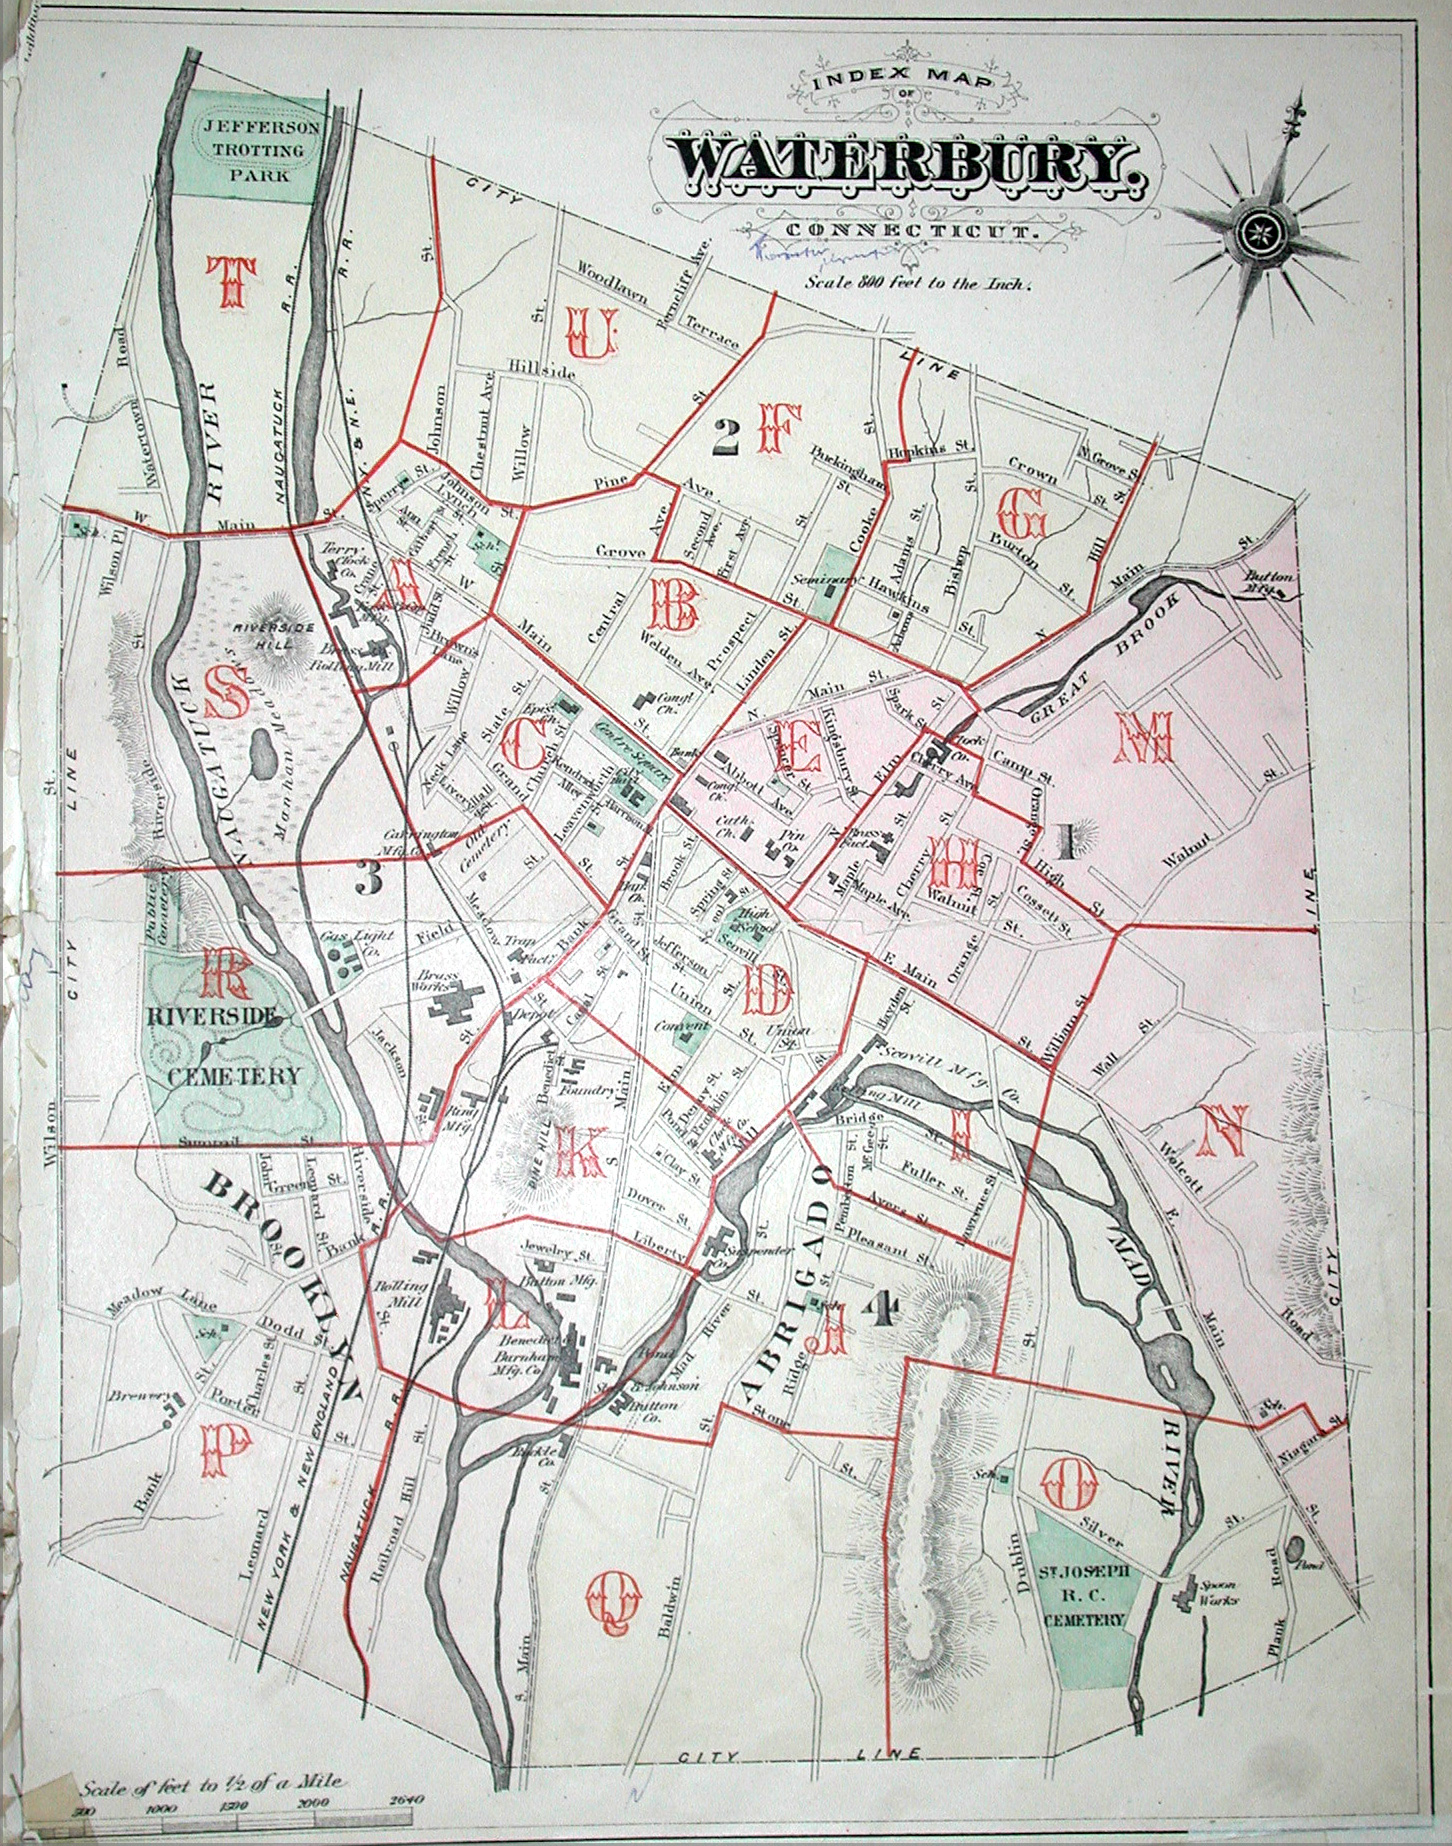 WATERBURY MAPS